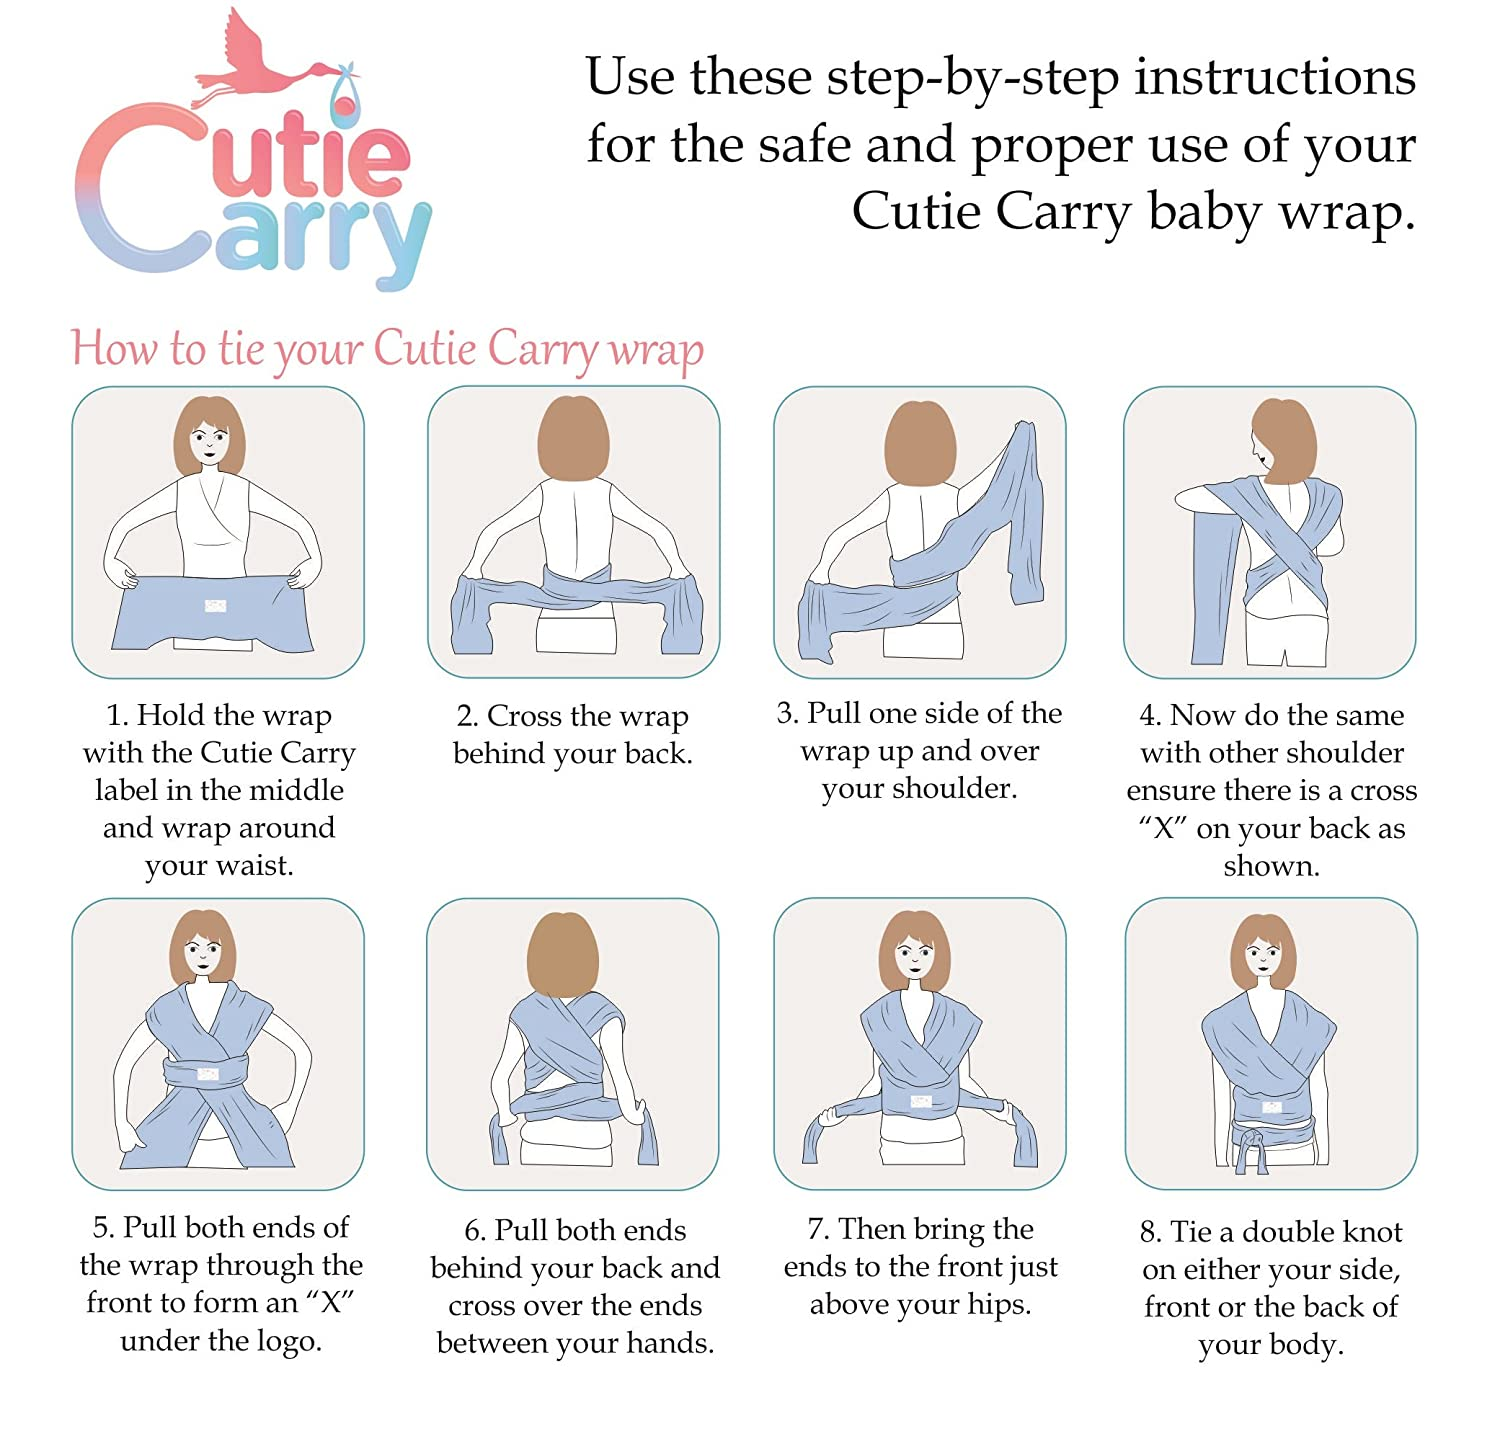 Baby Wrap Carrier by Cutie Carry Chest Sling Items for Newborn Child and Infant Ergo Papoose Hands Free Breastfeeding Carrying Wraps Dark Grey Heather